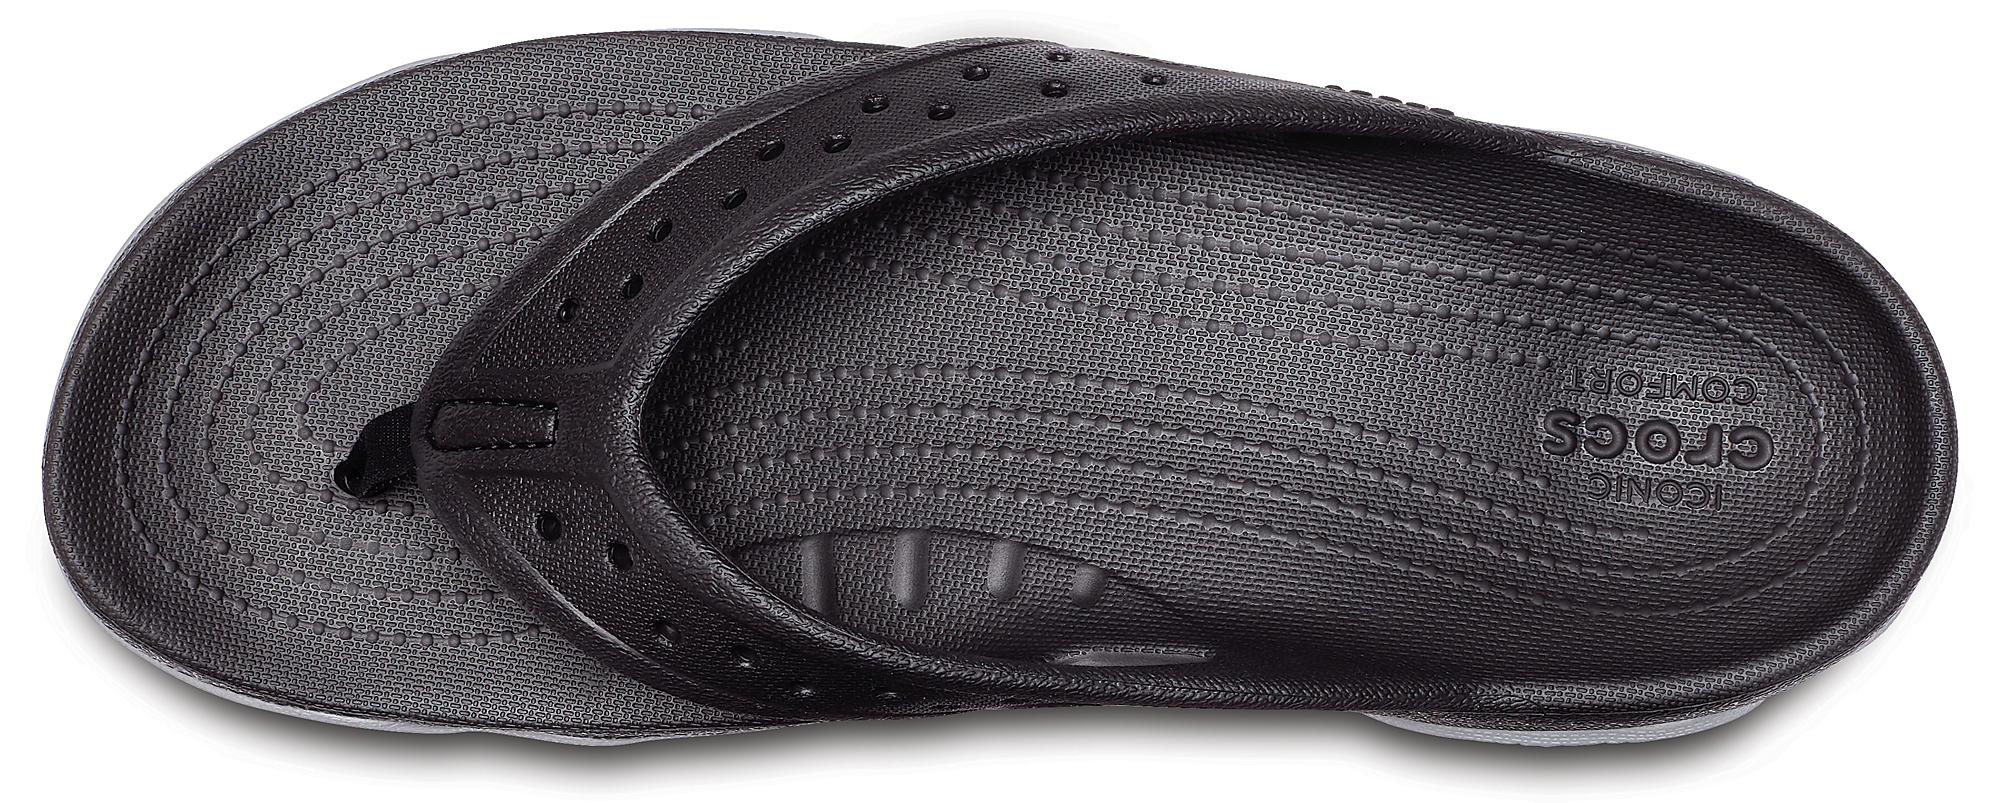 Șlapi Bărbați casual Crocs Mens' Swiftwater Deck Flip Negri -3